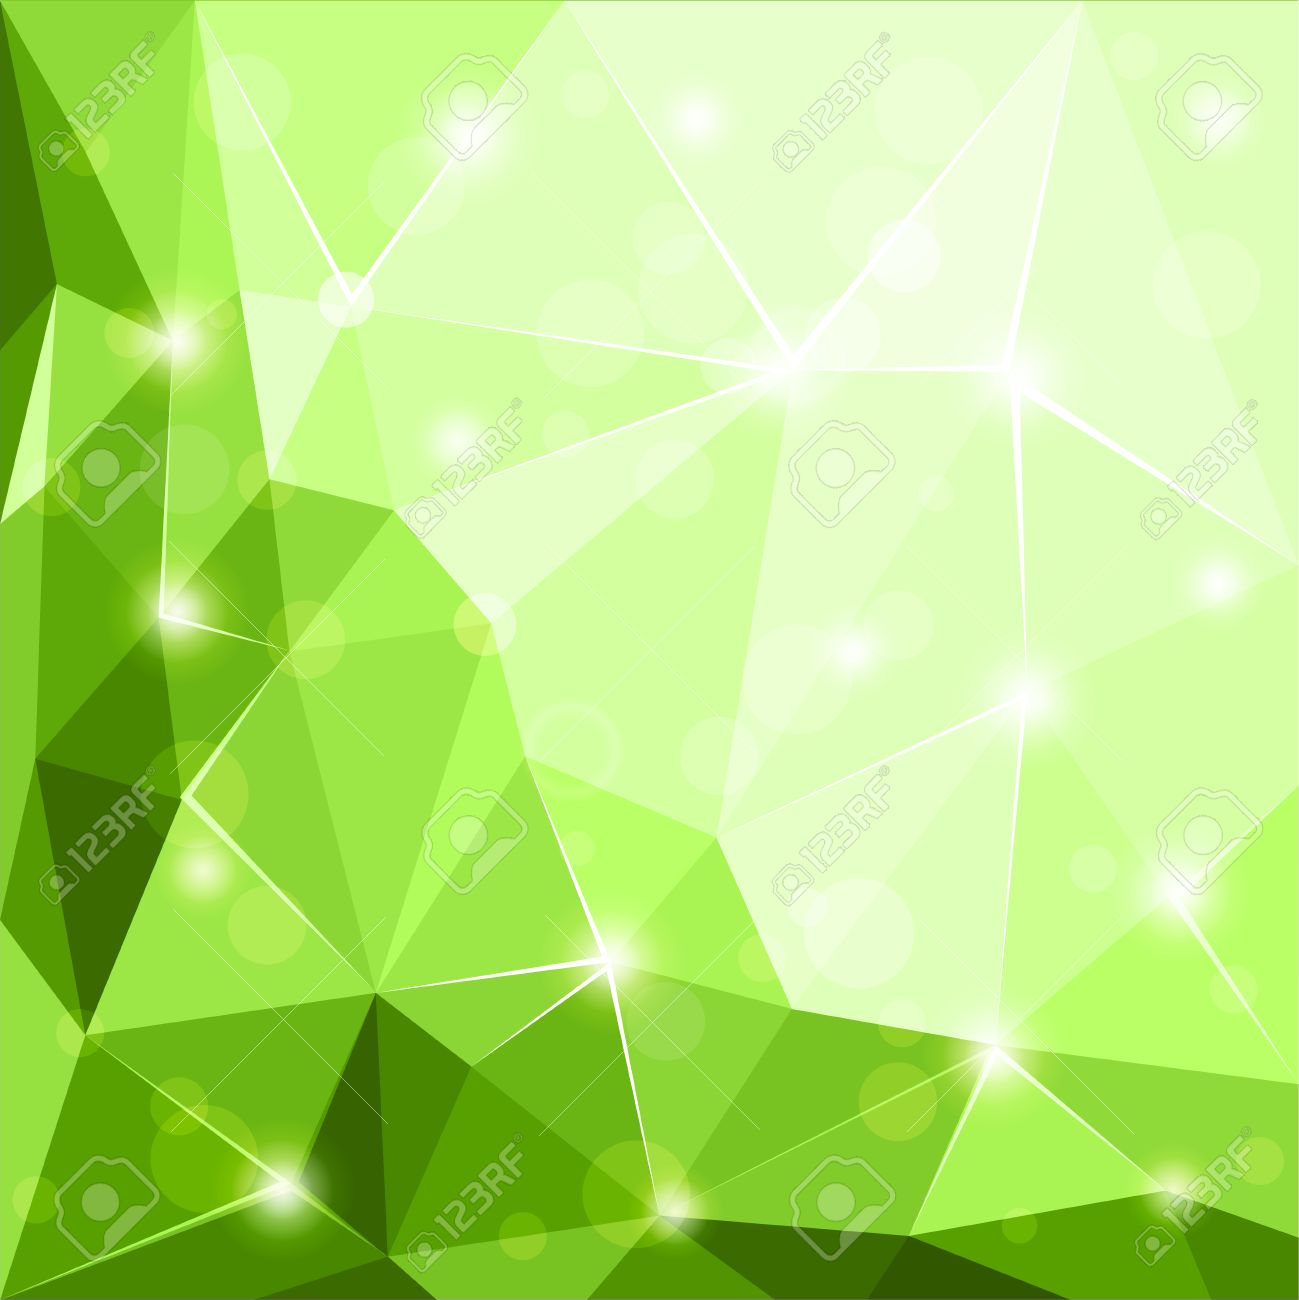 Abstract Polygonal Geometric Facet Shiny Green Background Wallpaper